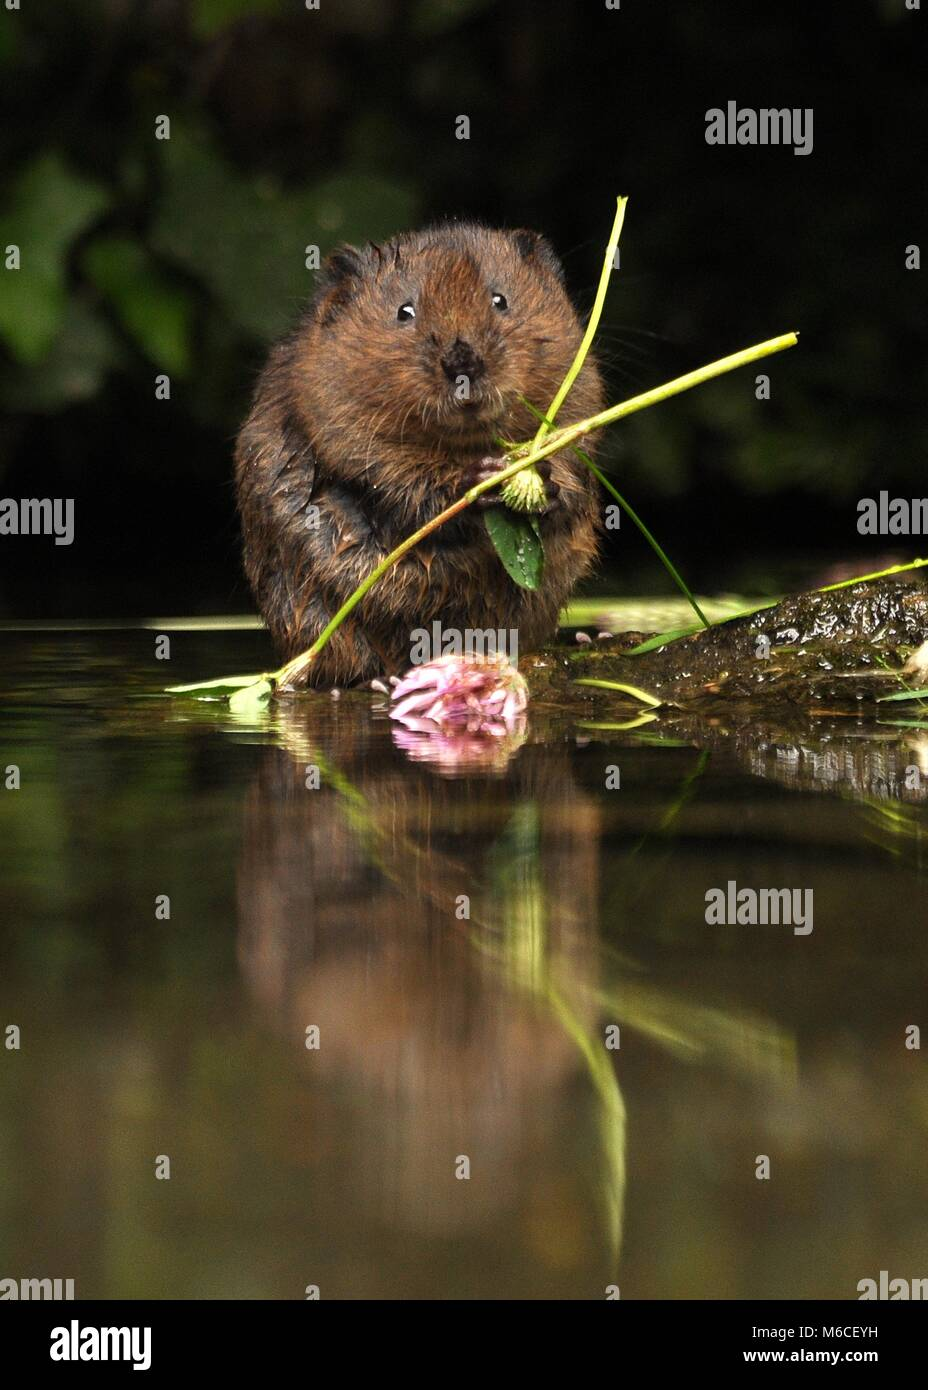 A beautiful water vole captured in the UK eating some flora and clover. - Stock Image